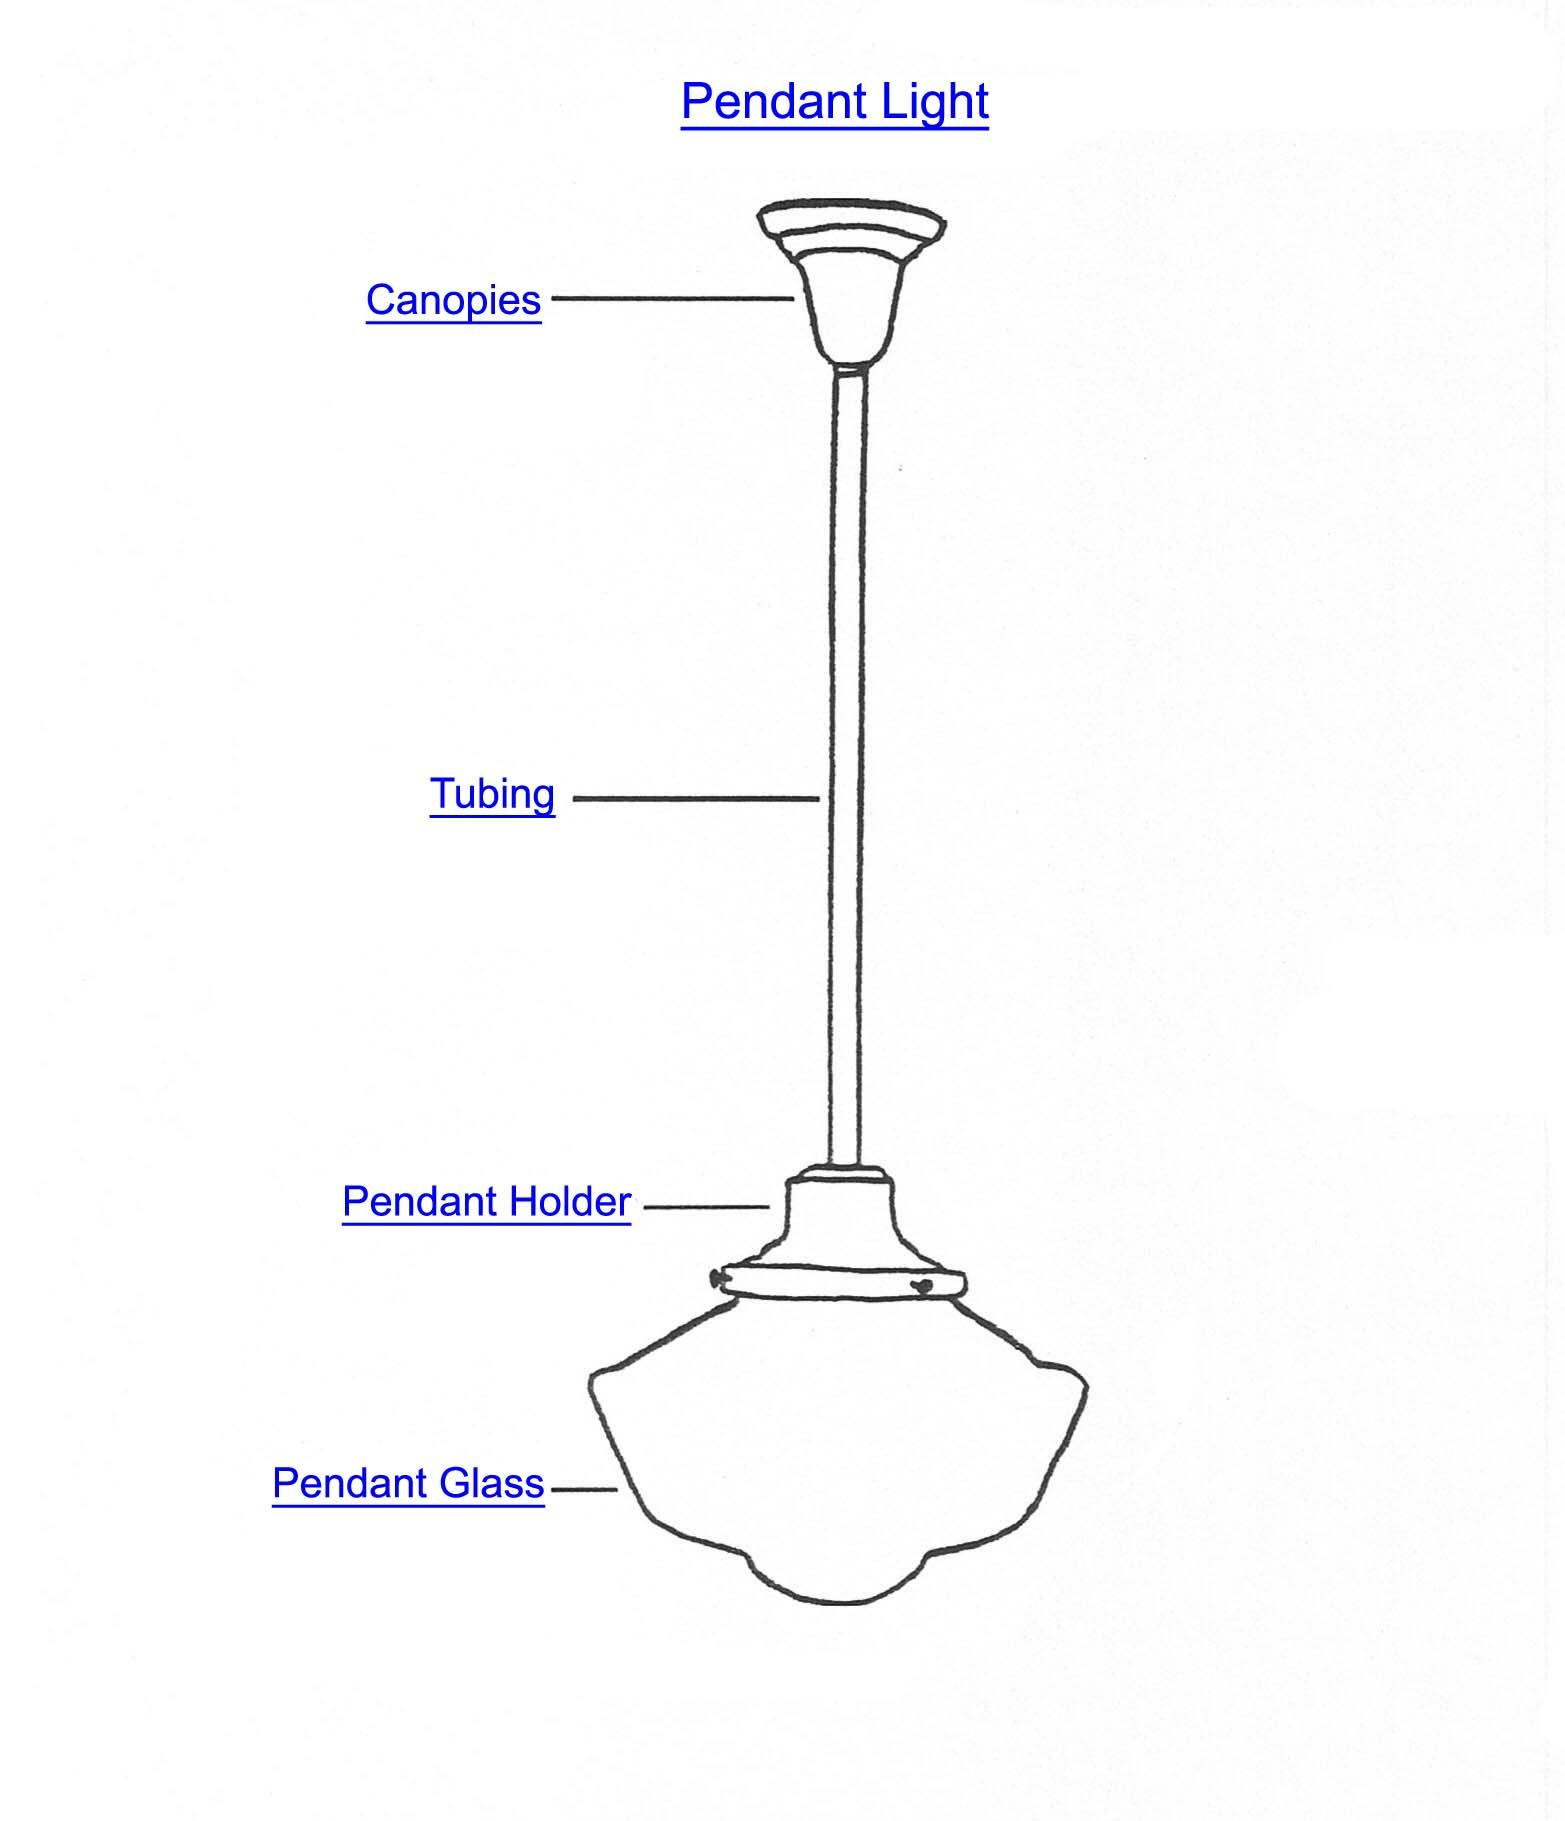 medium resolution of pendant light parts by name